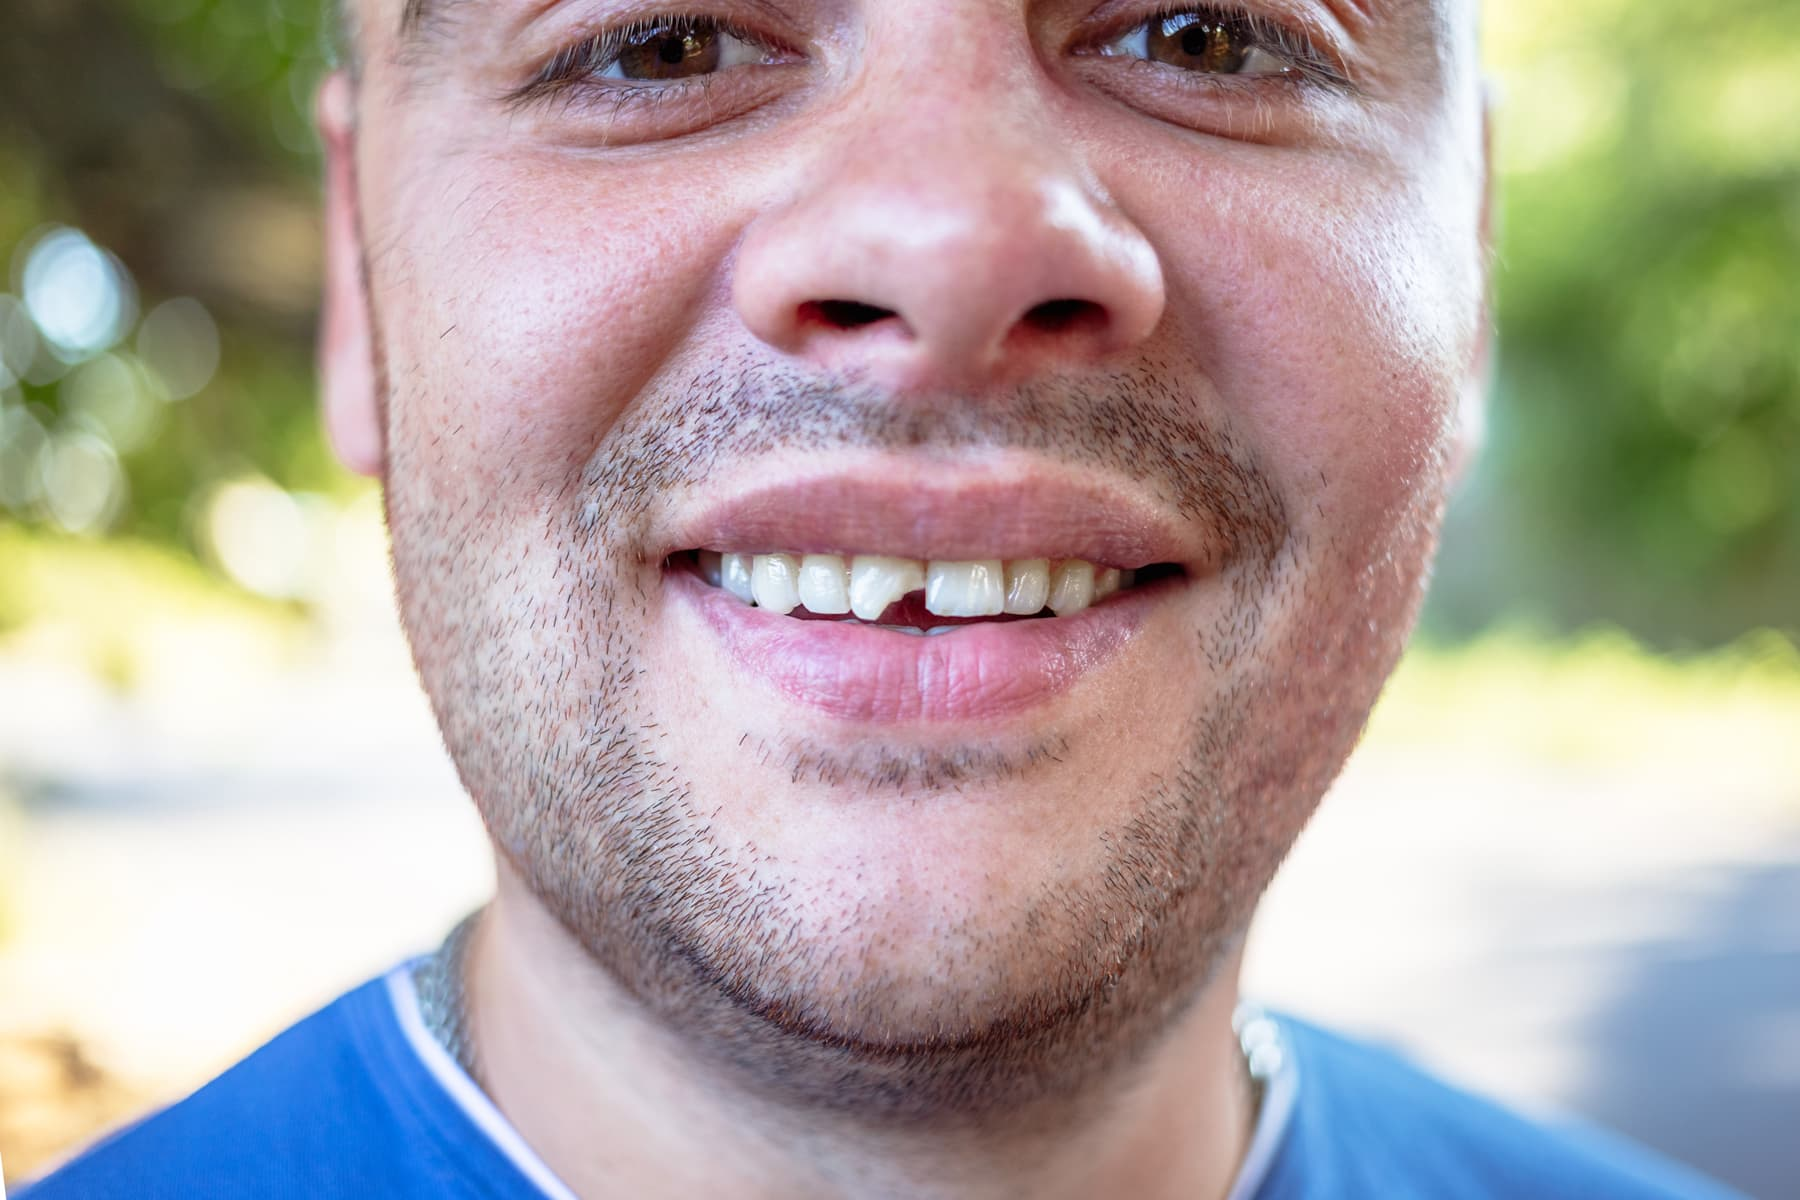 Chipped tooth front